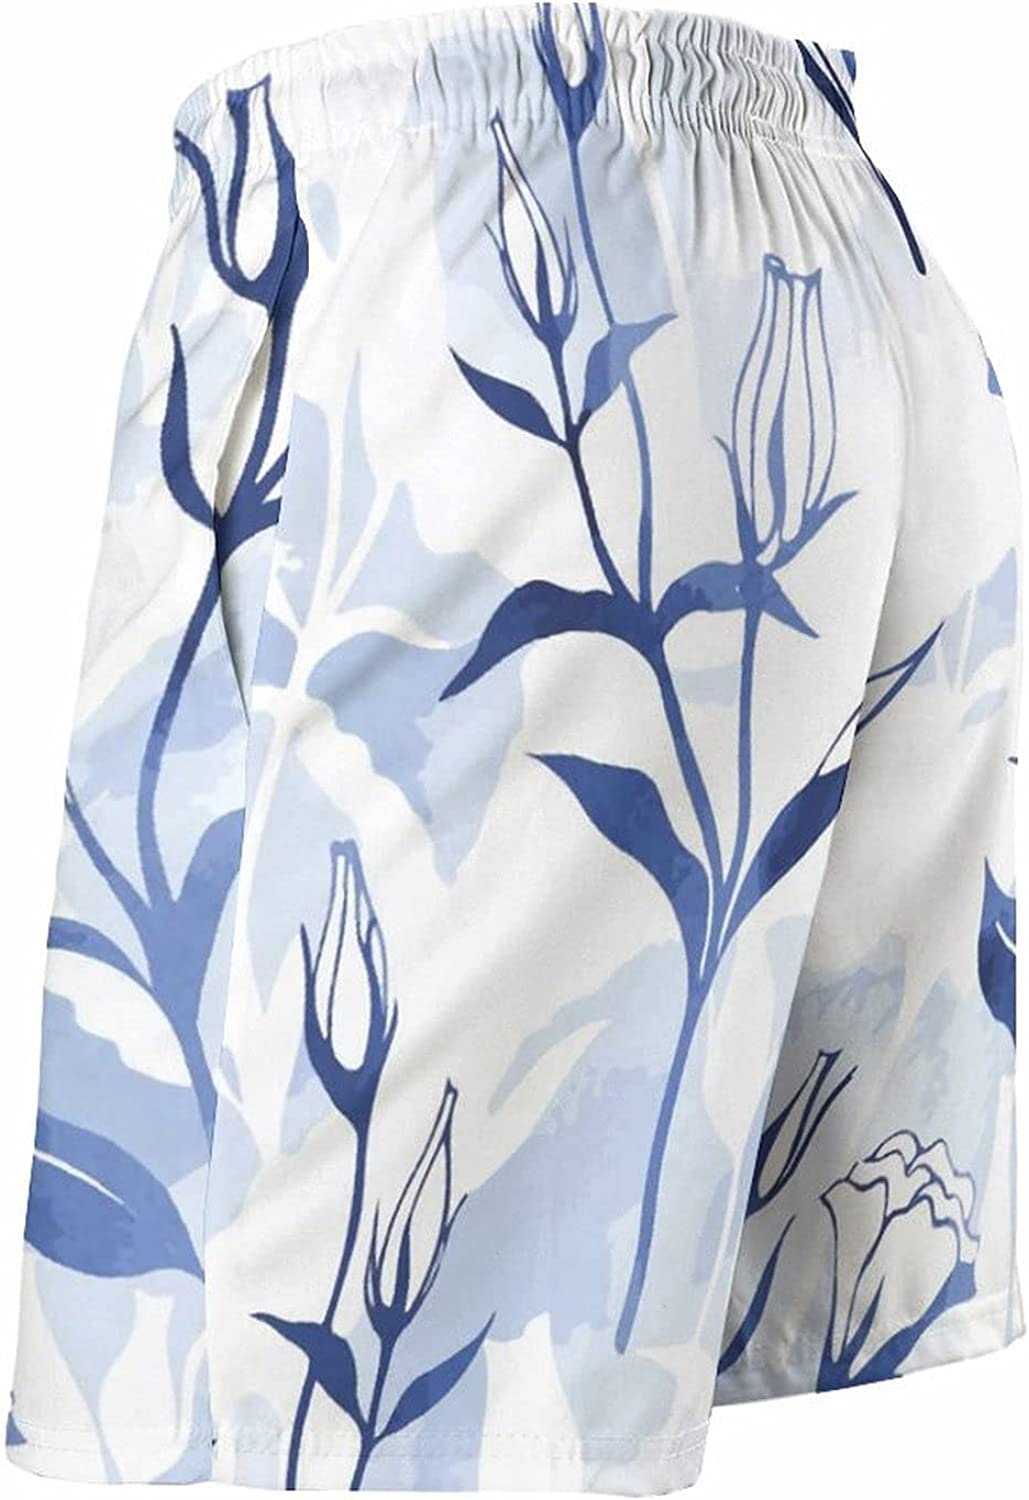 by Unbranded Men's Quick Dry Relaxed Fit Drawsting Board Shorts Flower Pattern